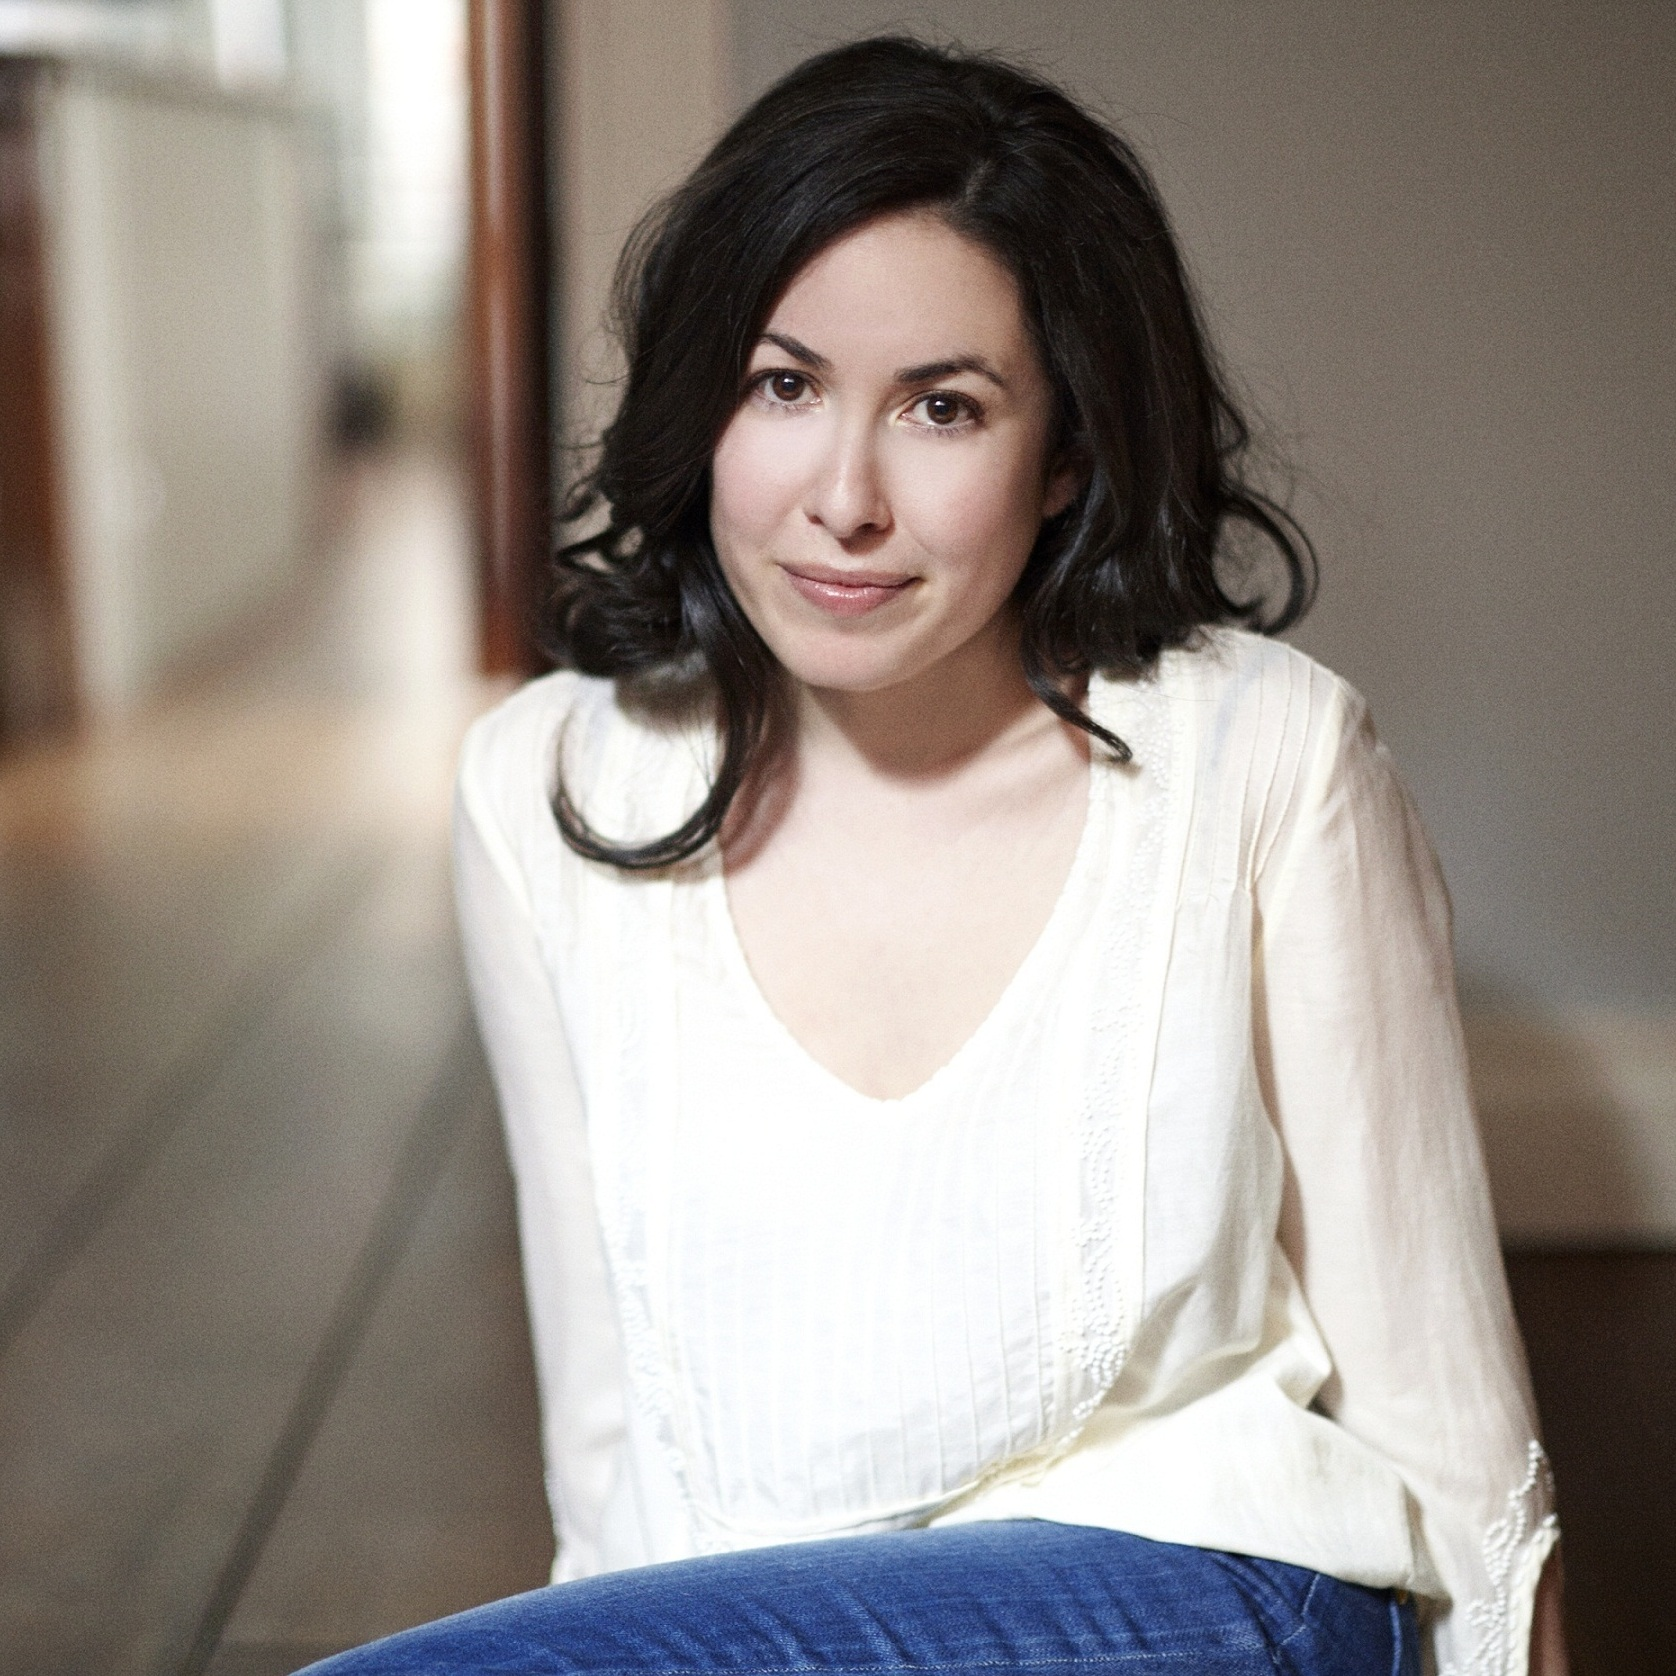 Jessica Lamb-Shapiro has published fiction and nonfiction in The Believer, McSweeney's, Open City and Index magazine.